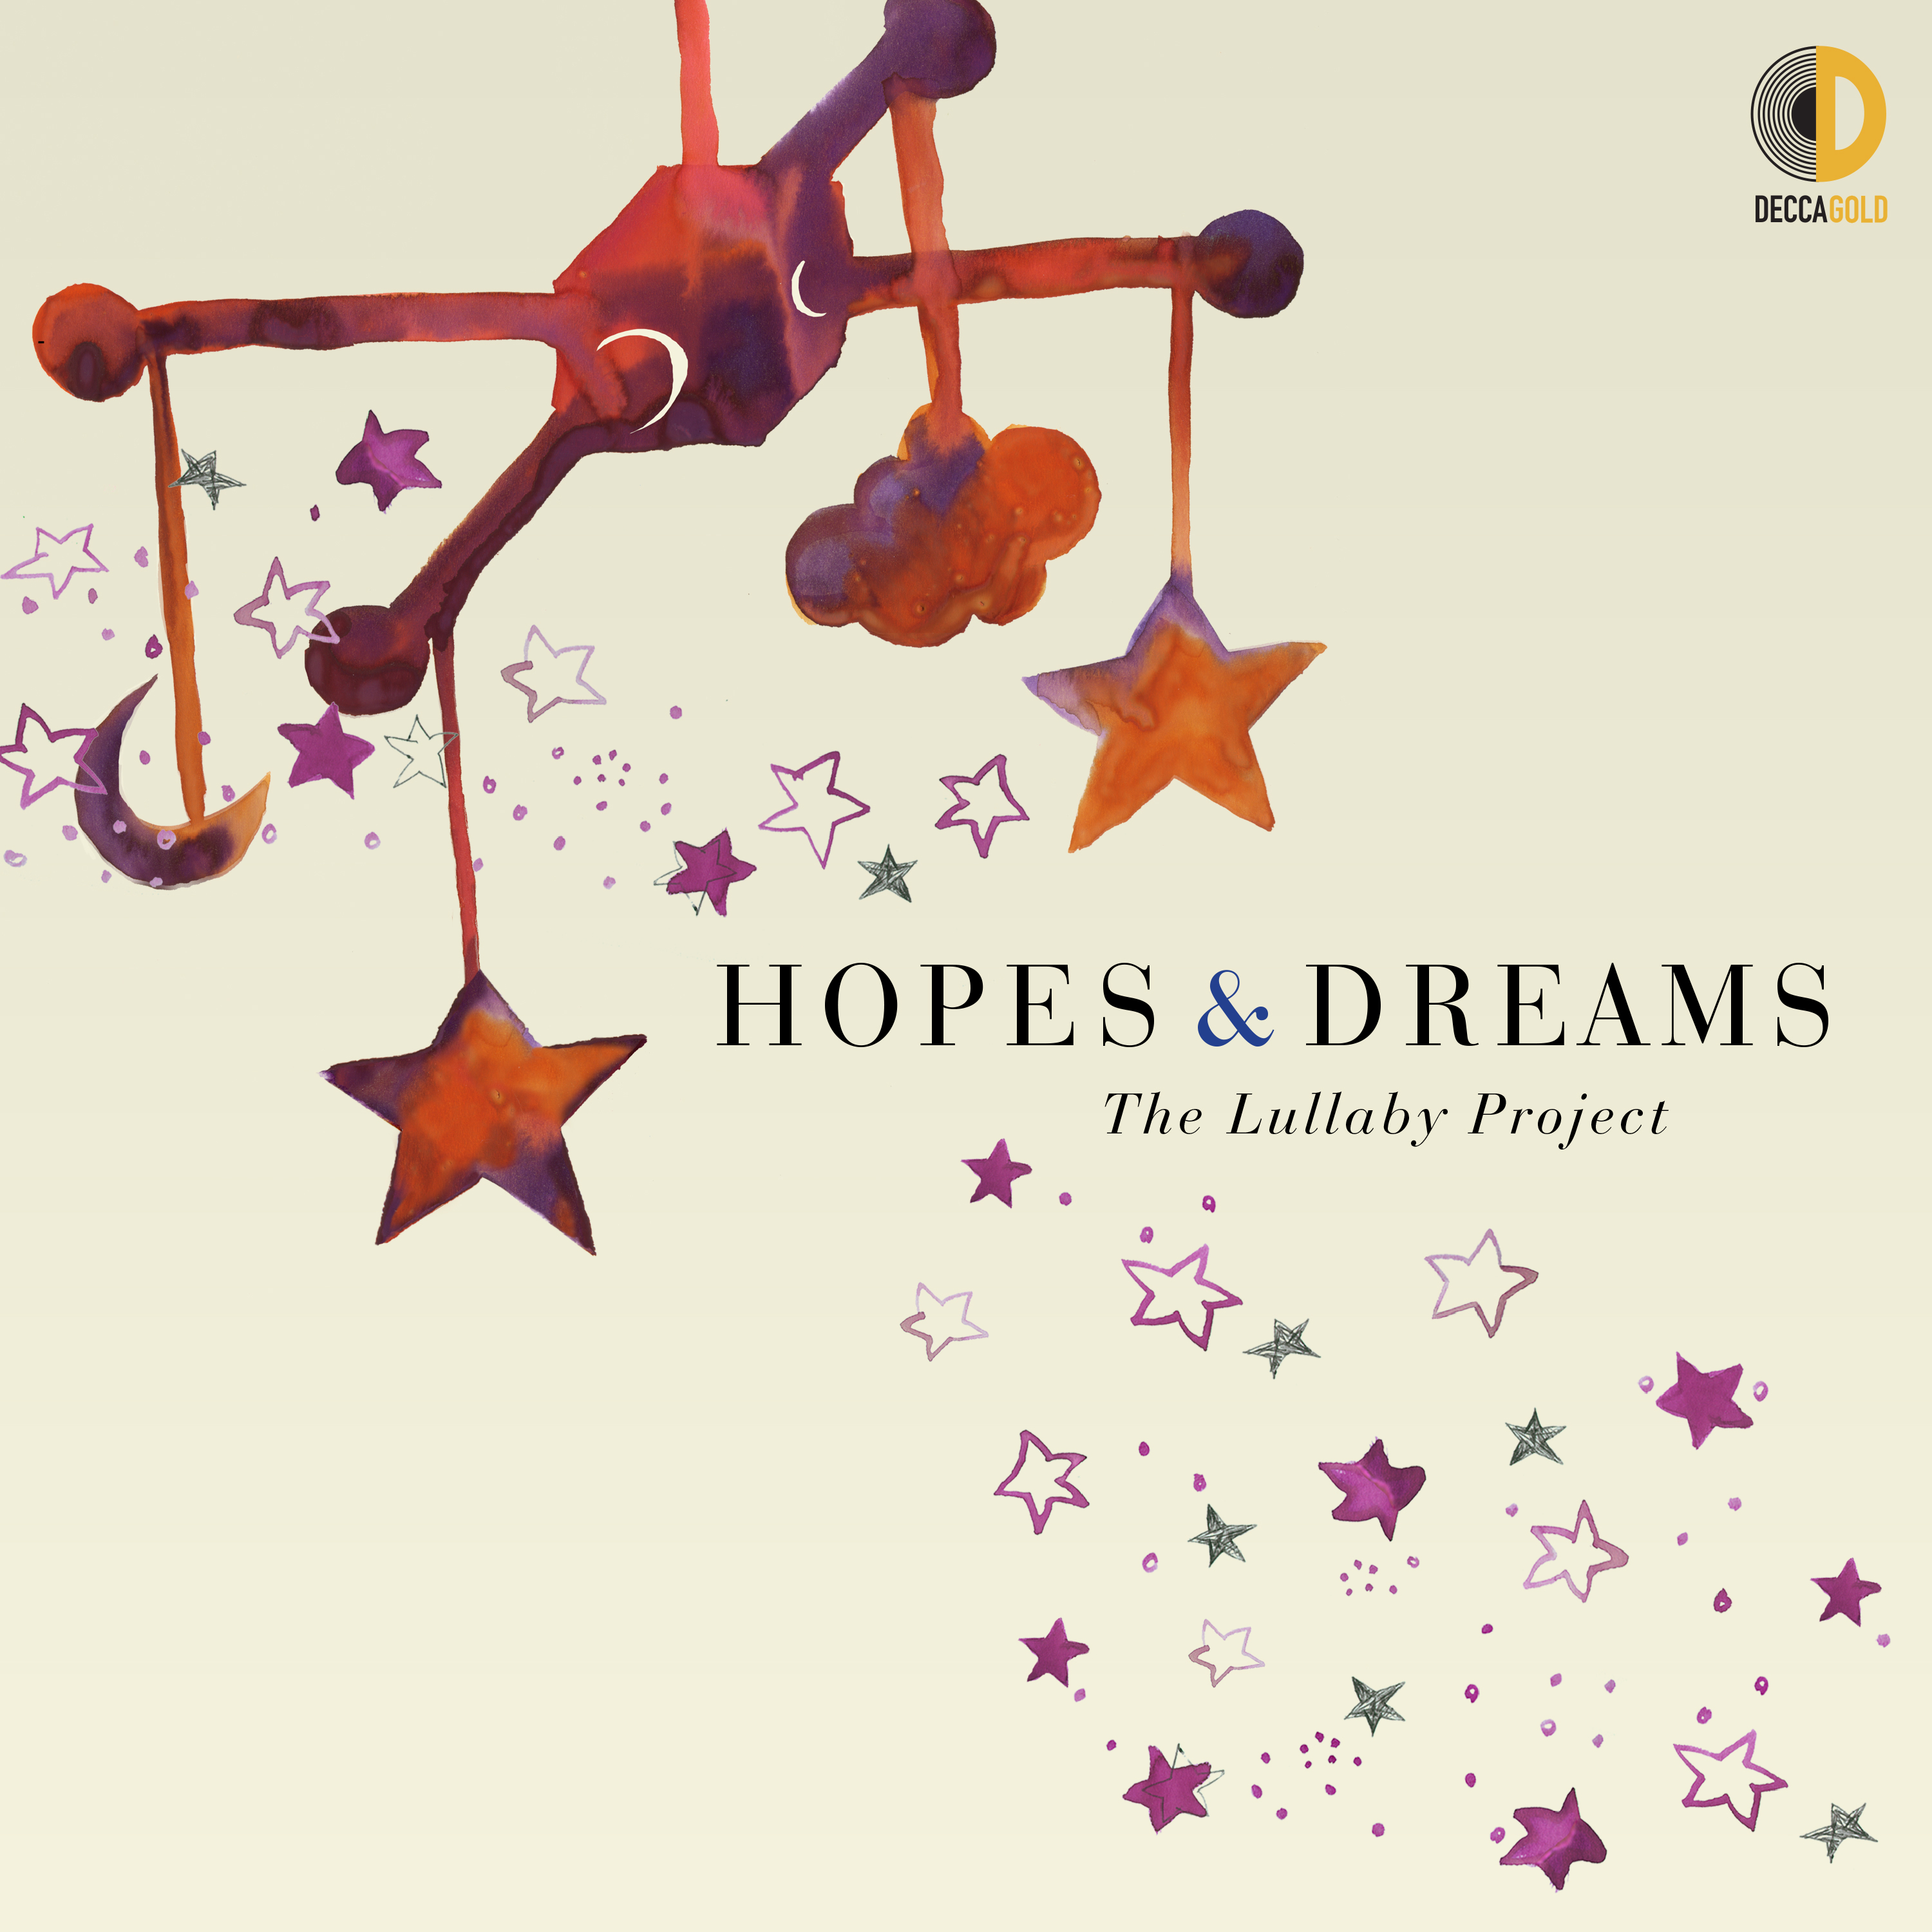 Hopes & Dreams The Lullaby Project